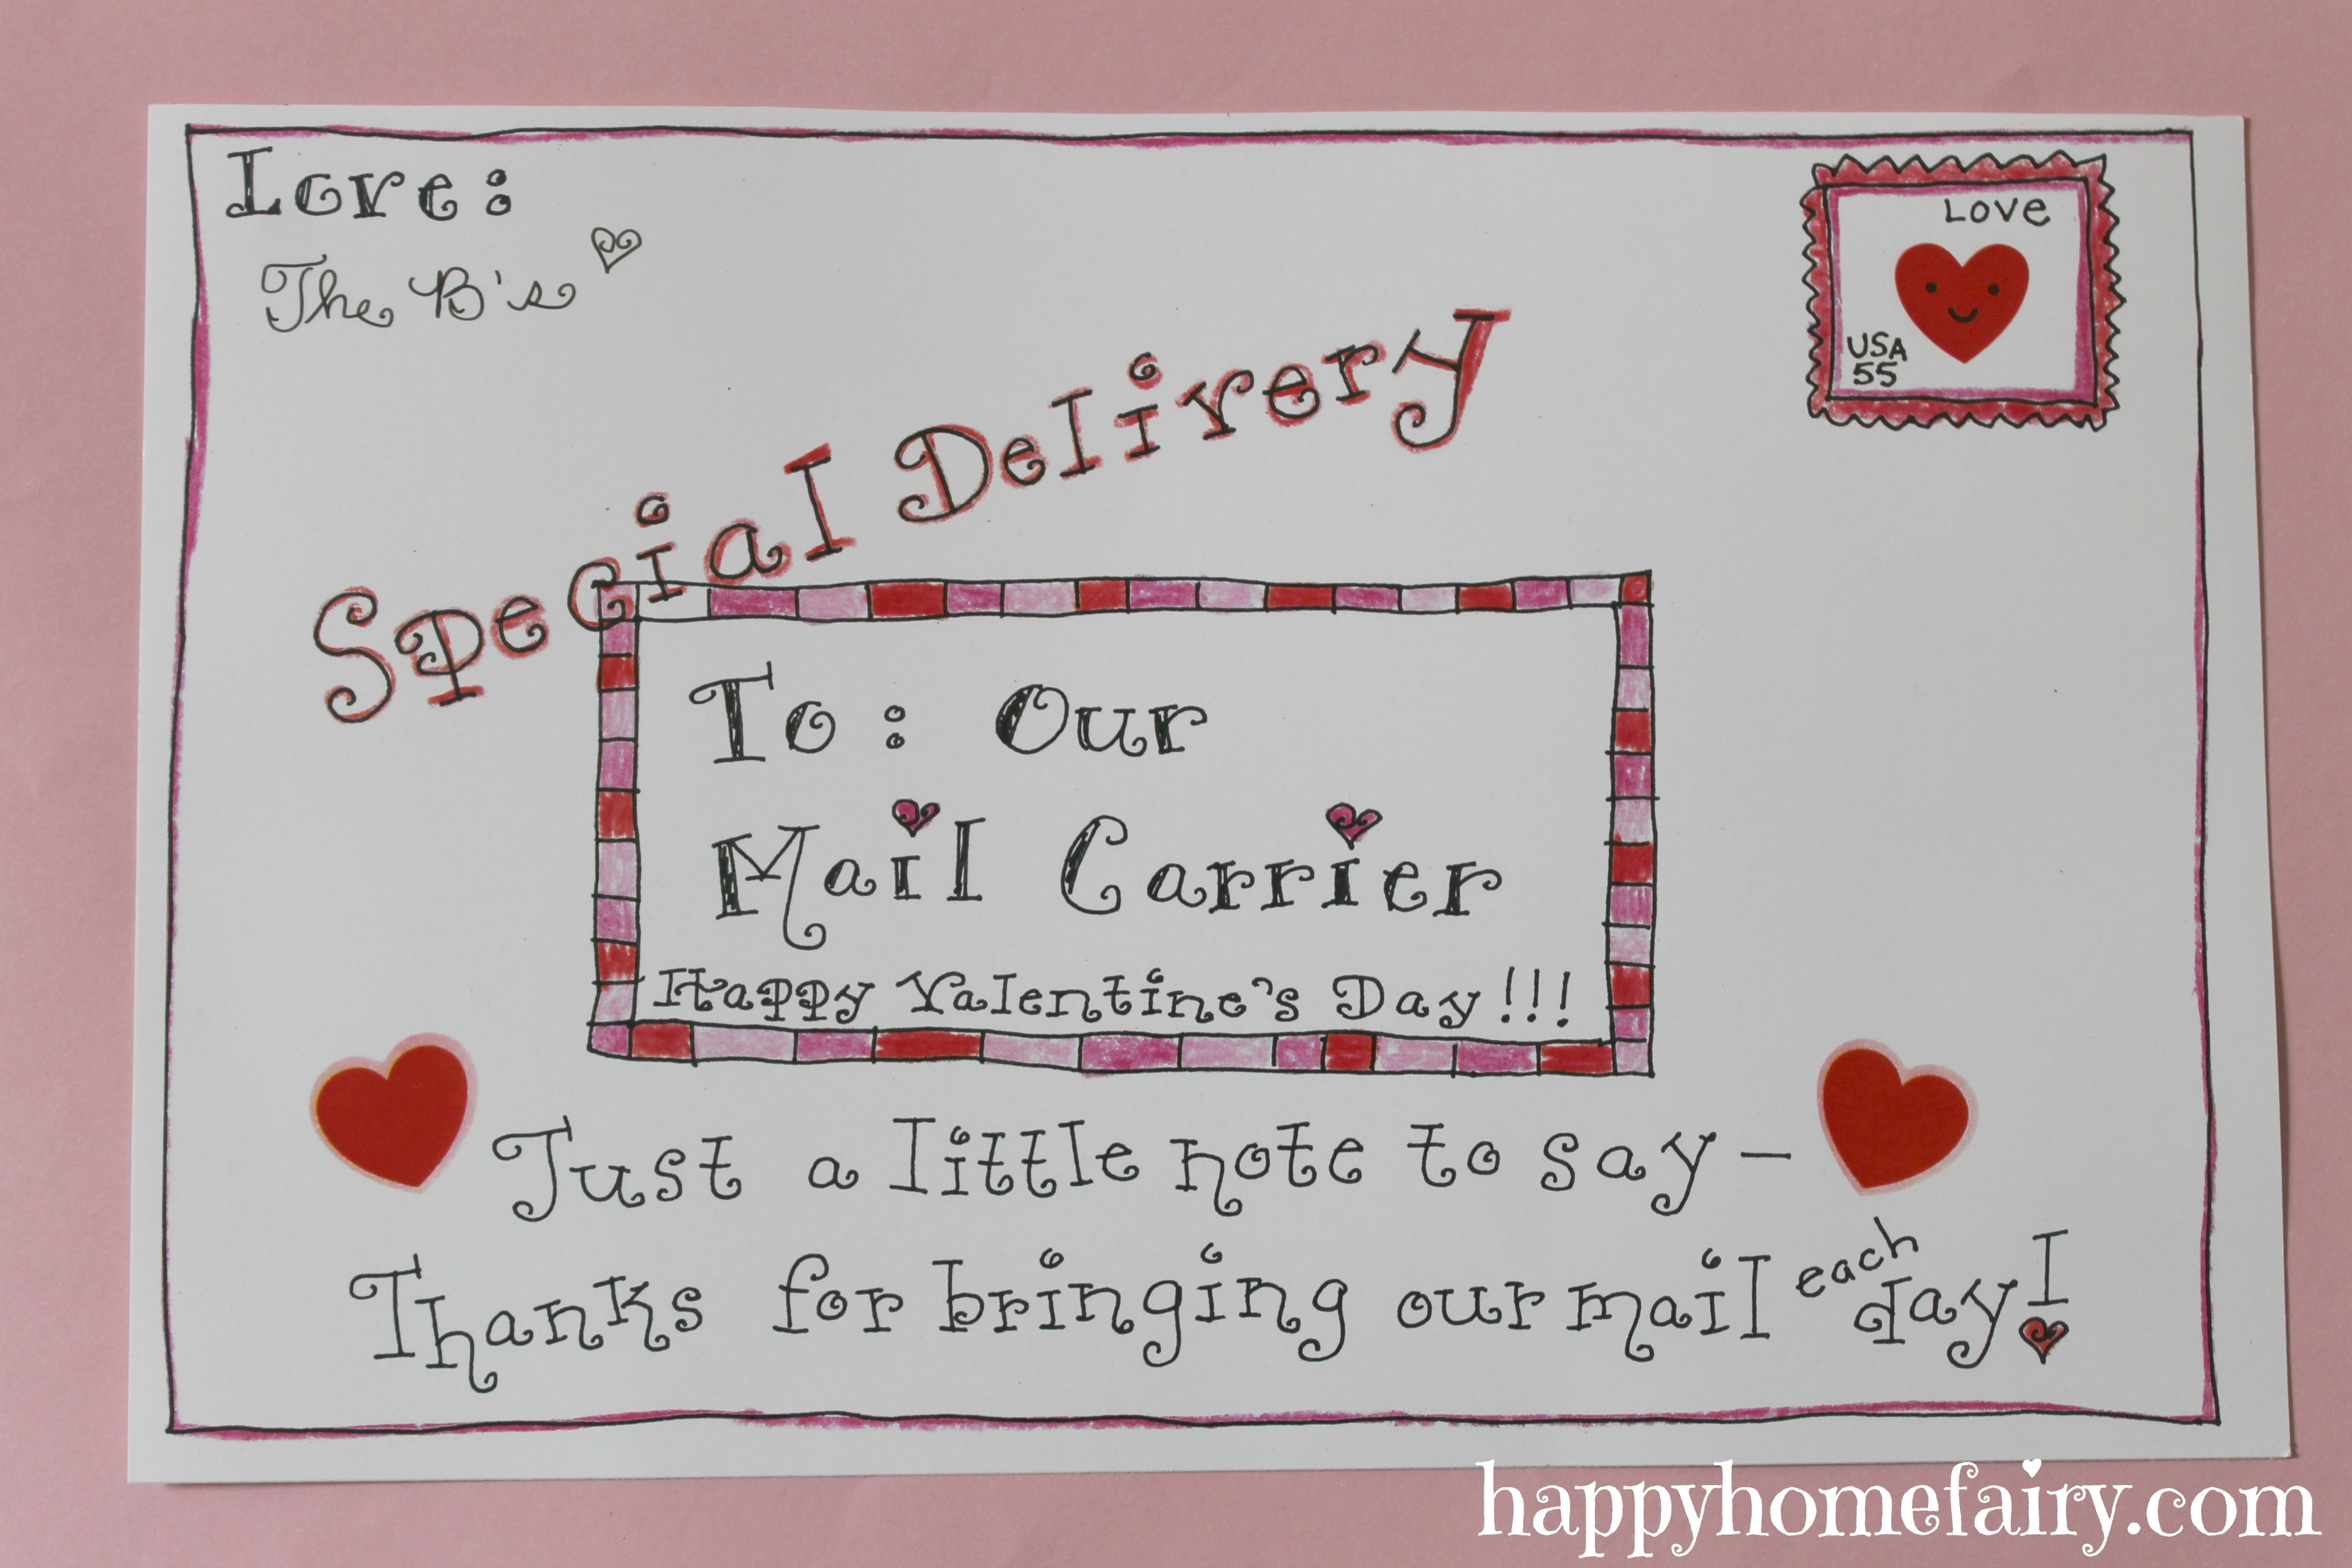 What to say on a valentines card